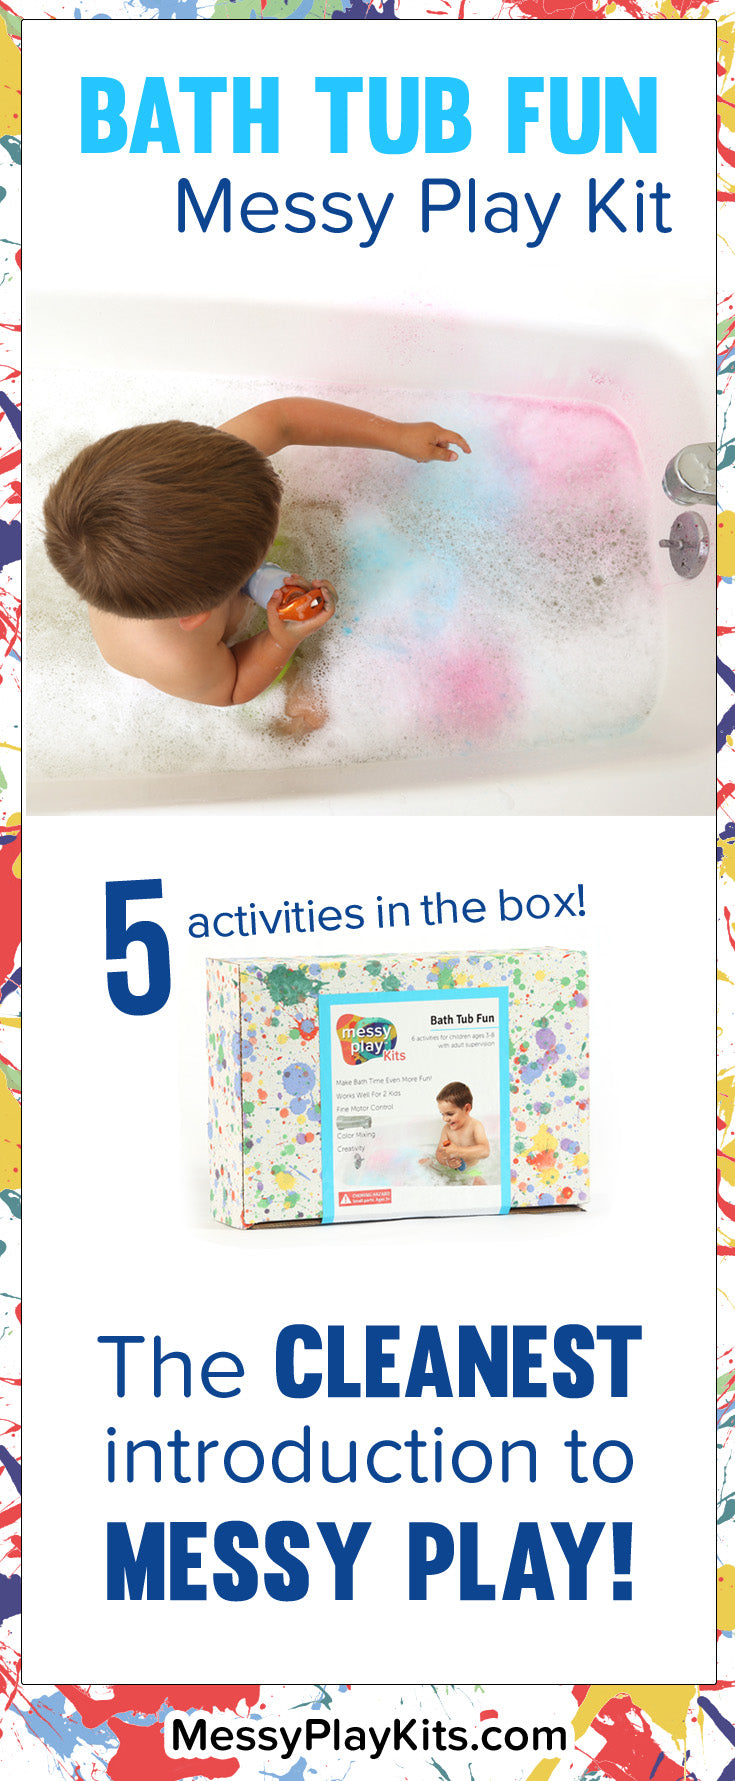 Bath Tub Messy Play Kit